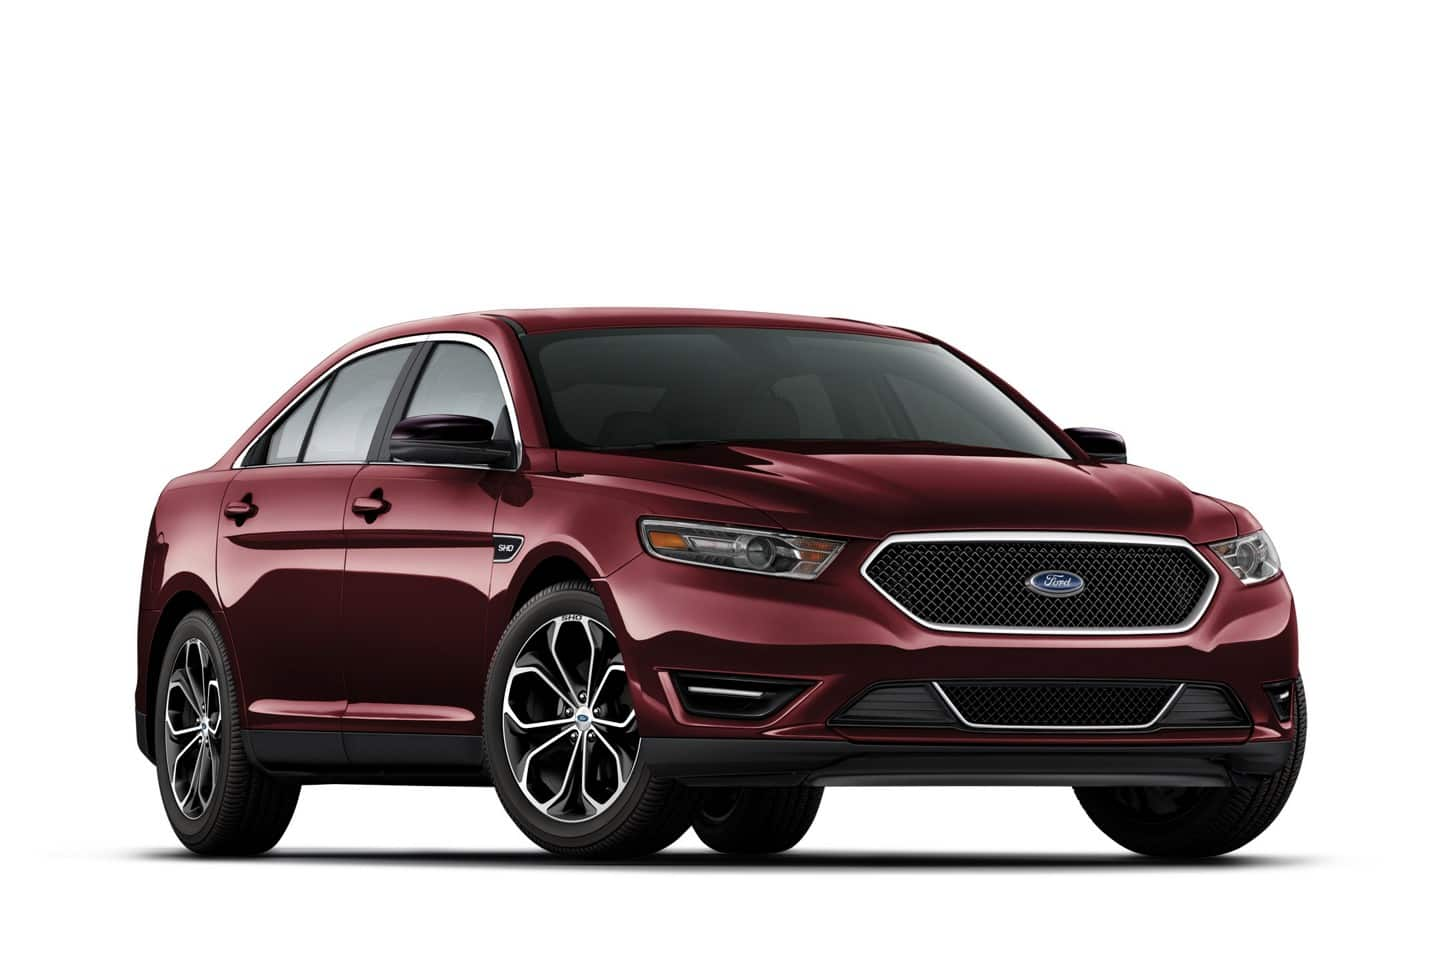 99 The 2019 Ford Taurus Sho Ratings for 2019 Ford Taurus Sho